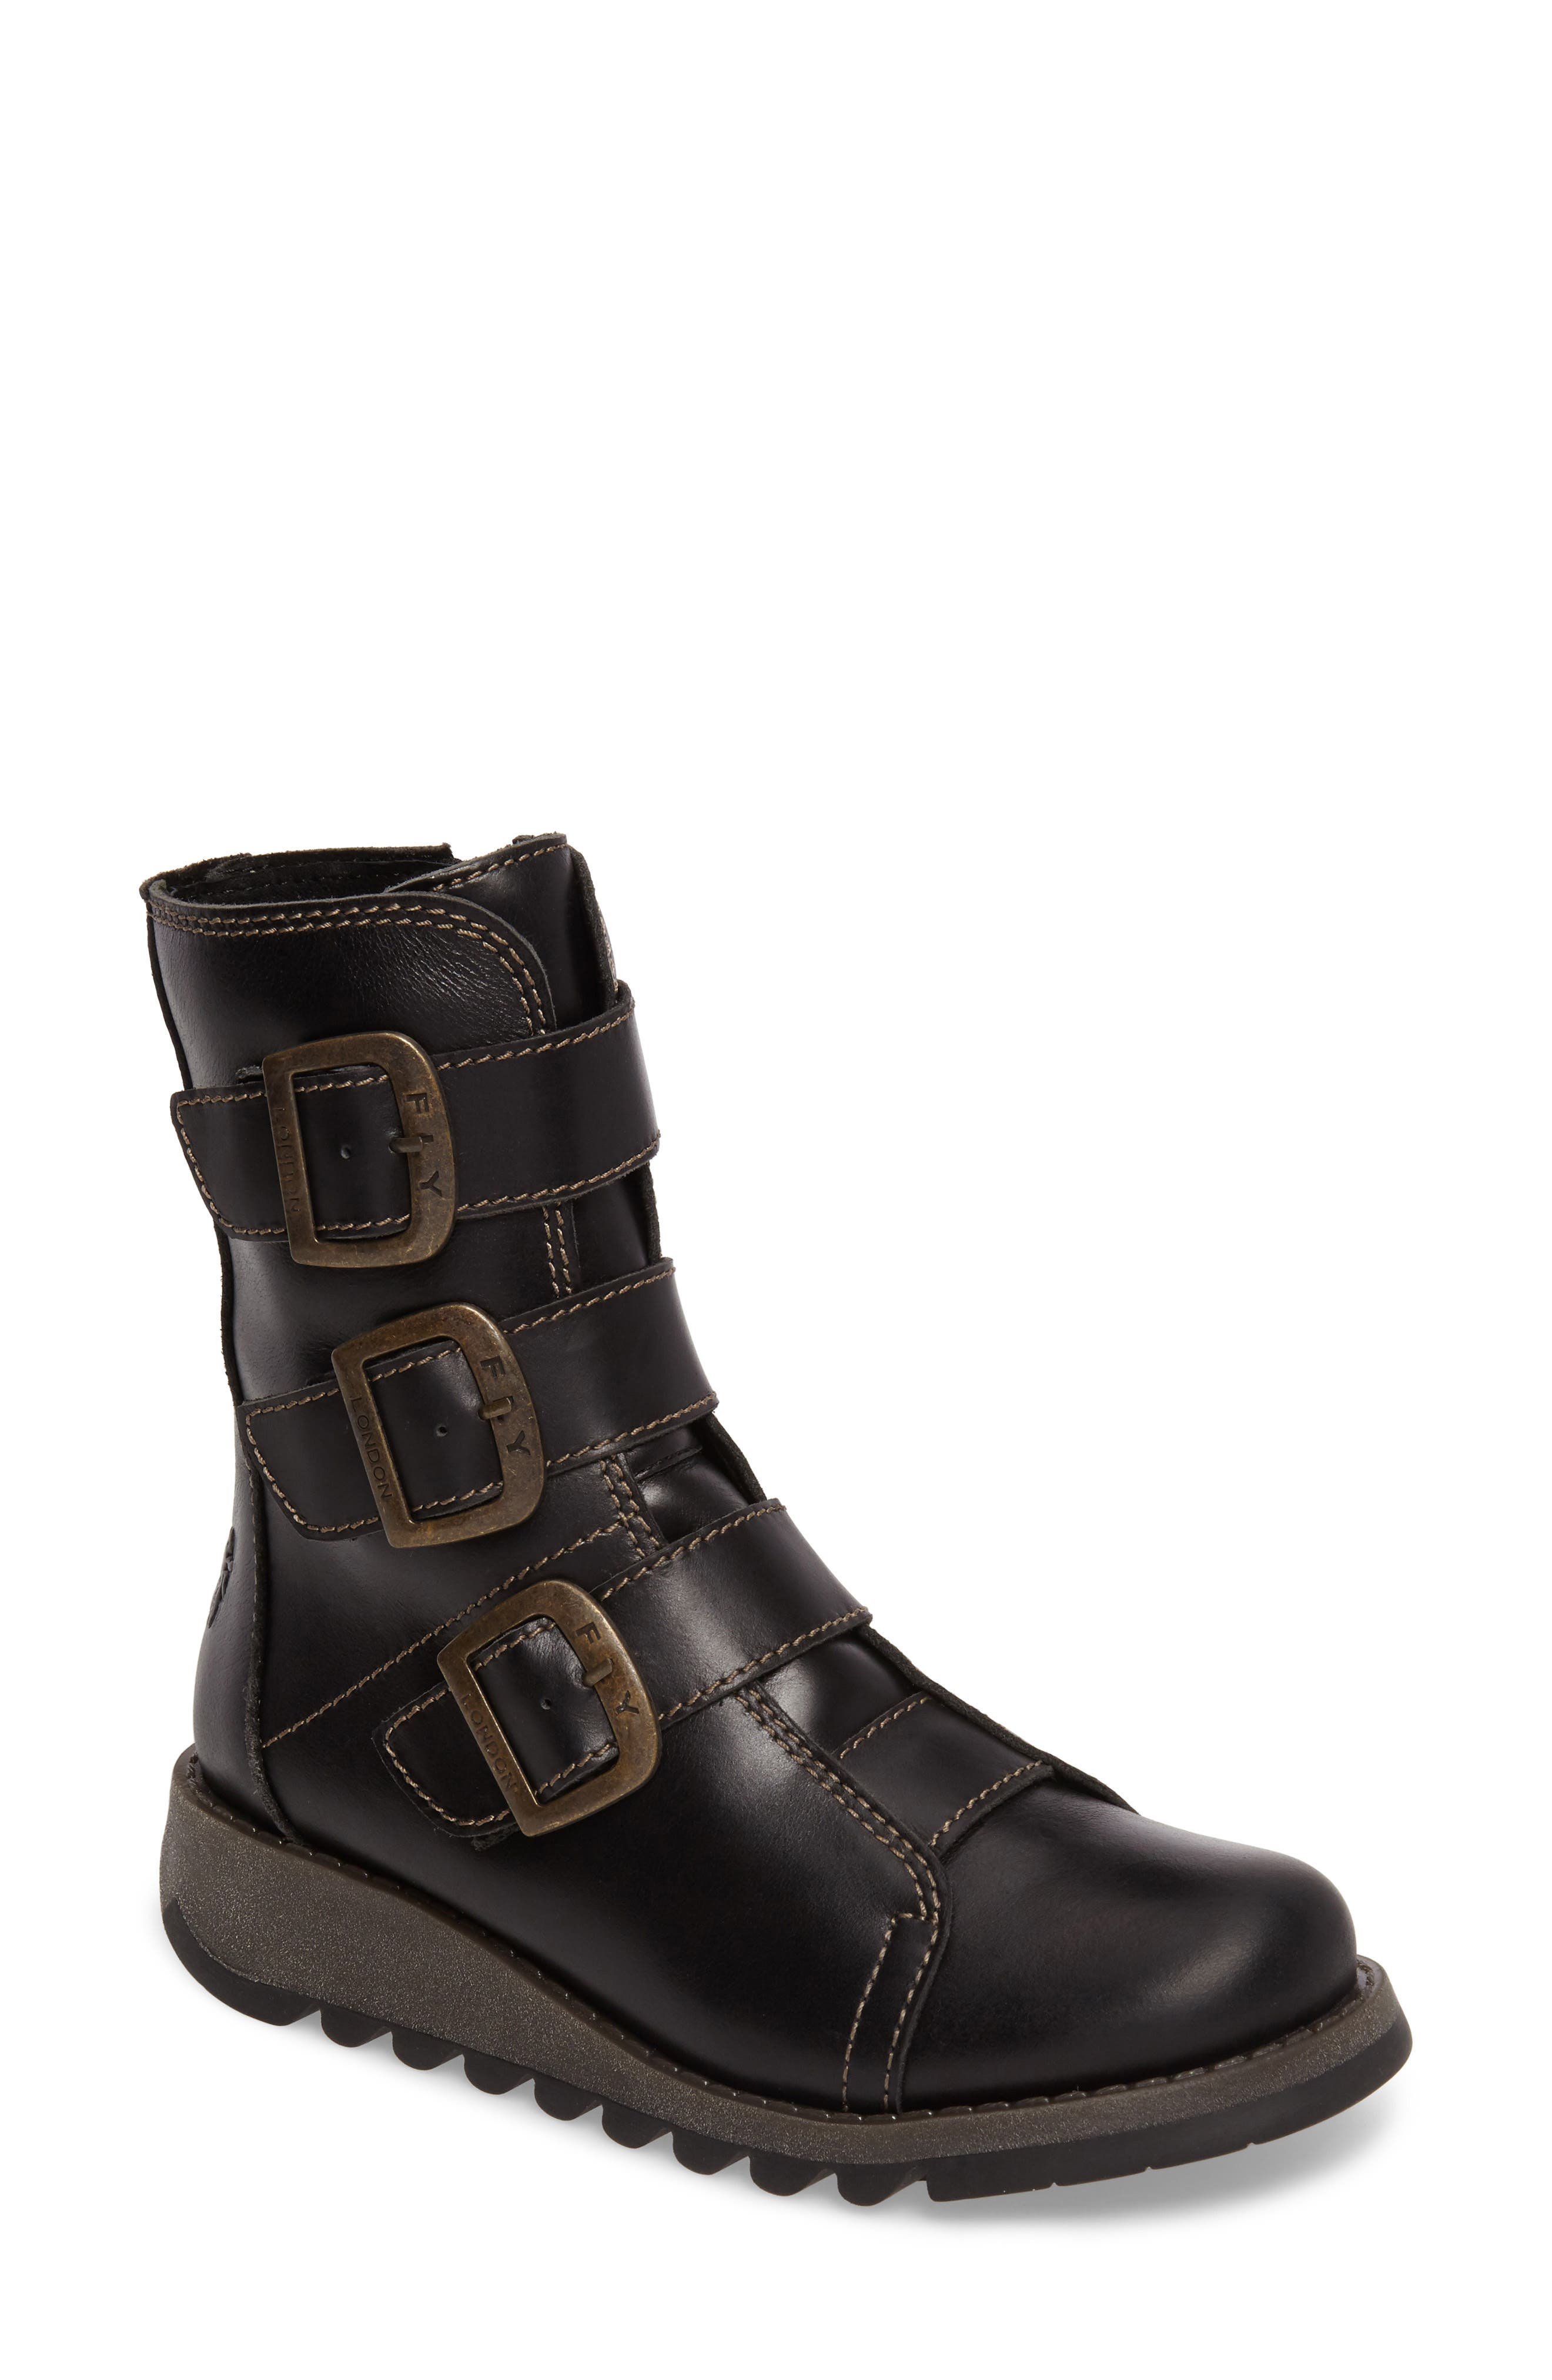 Alternate Image 1 Selected - Fly London Scop Boot (Women)